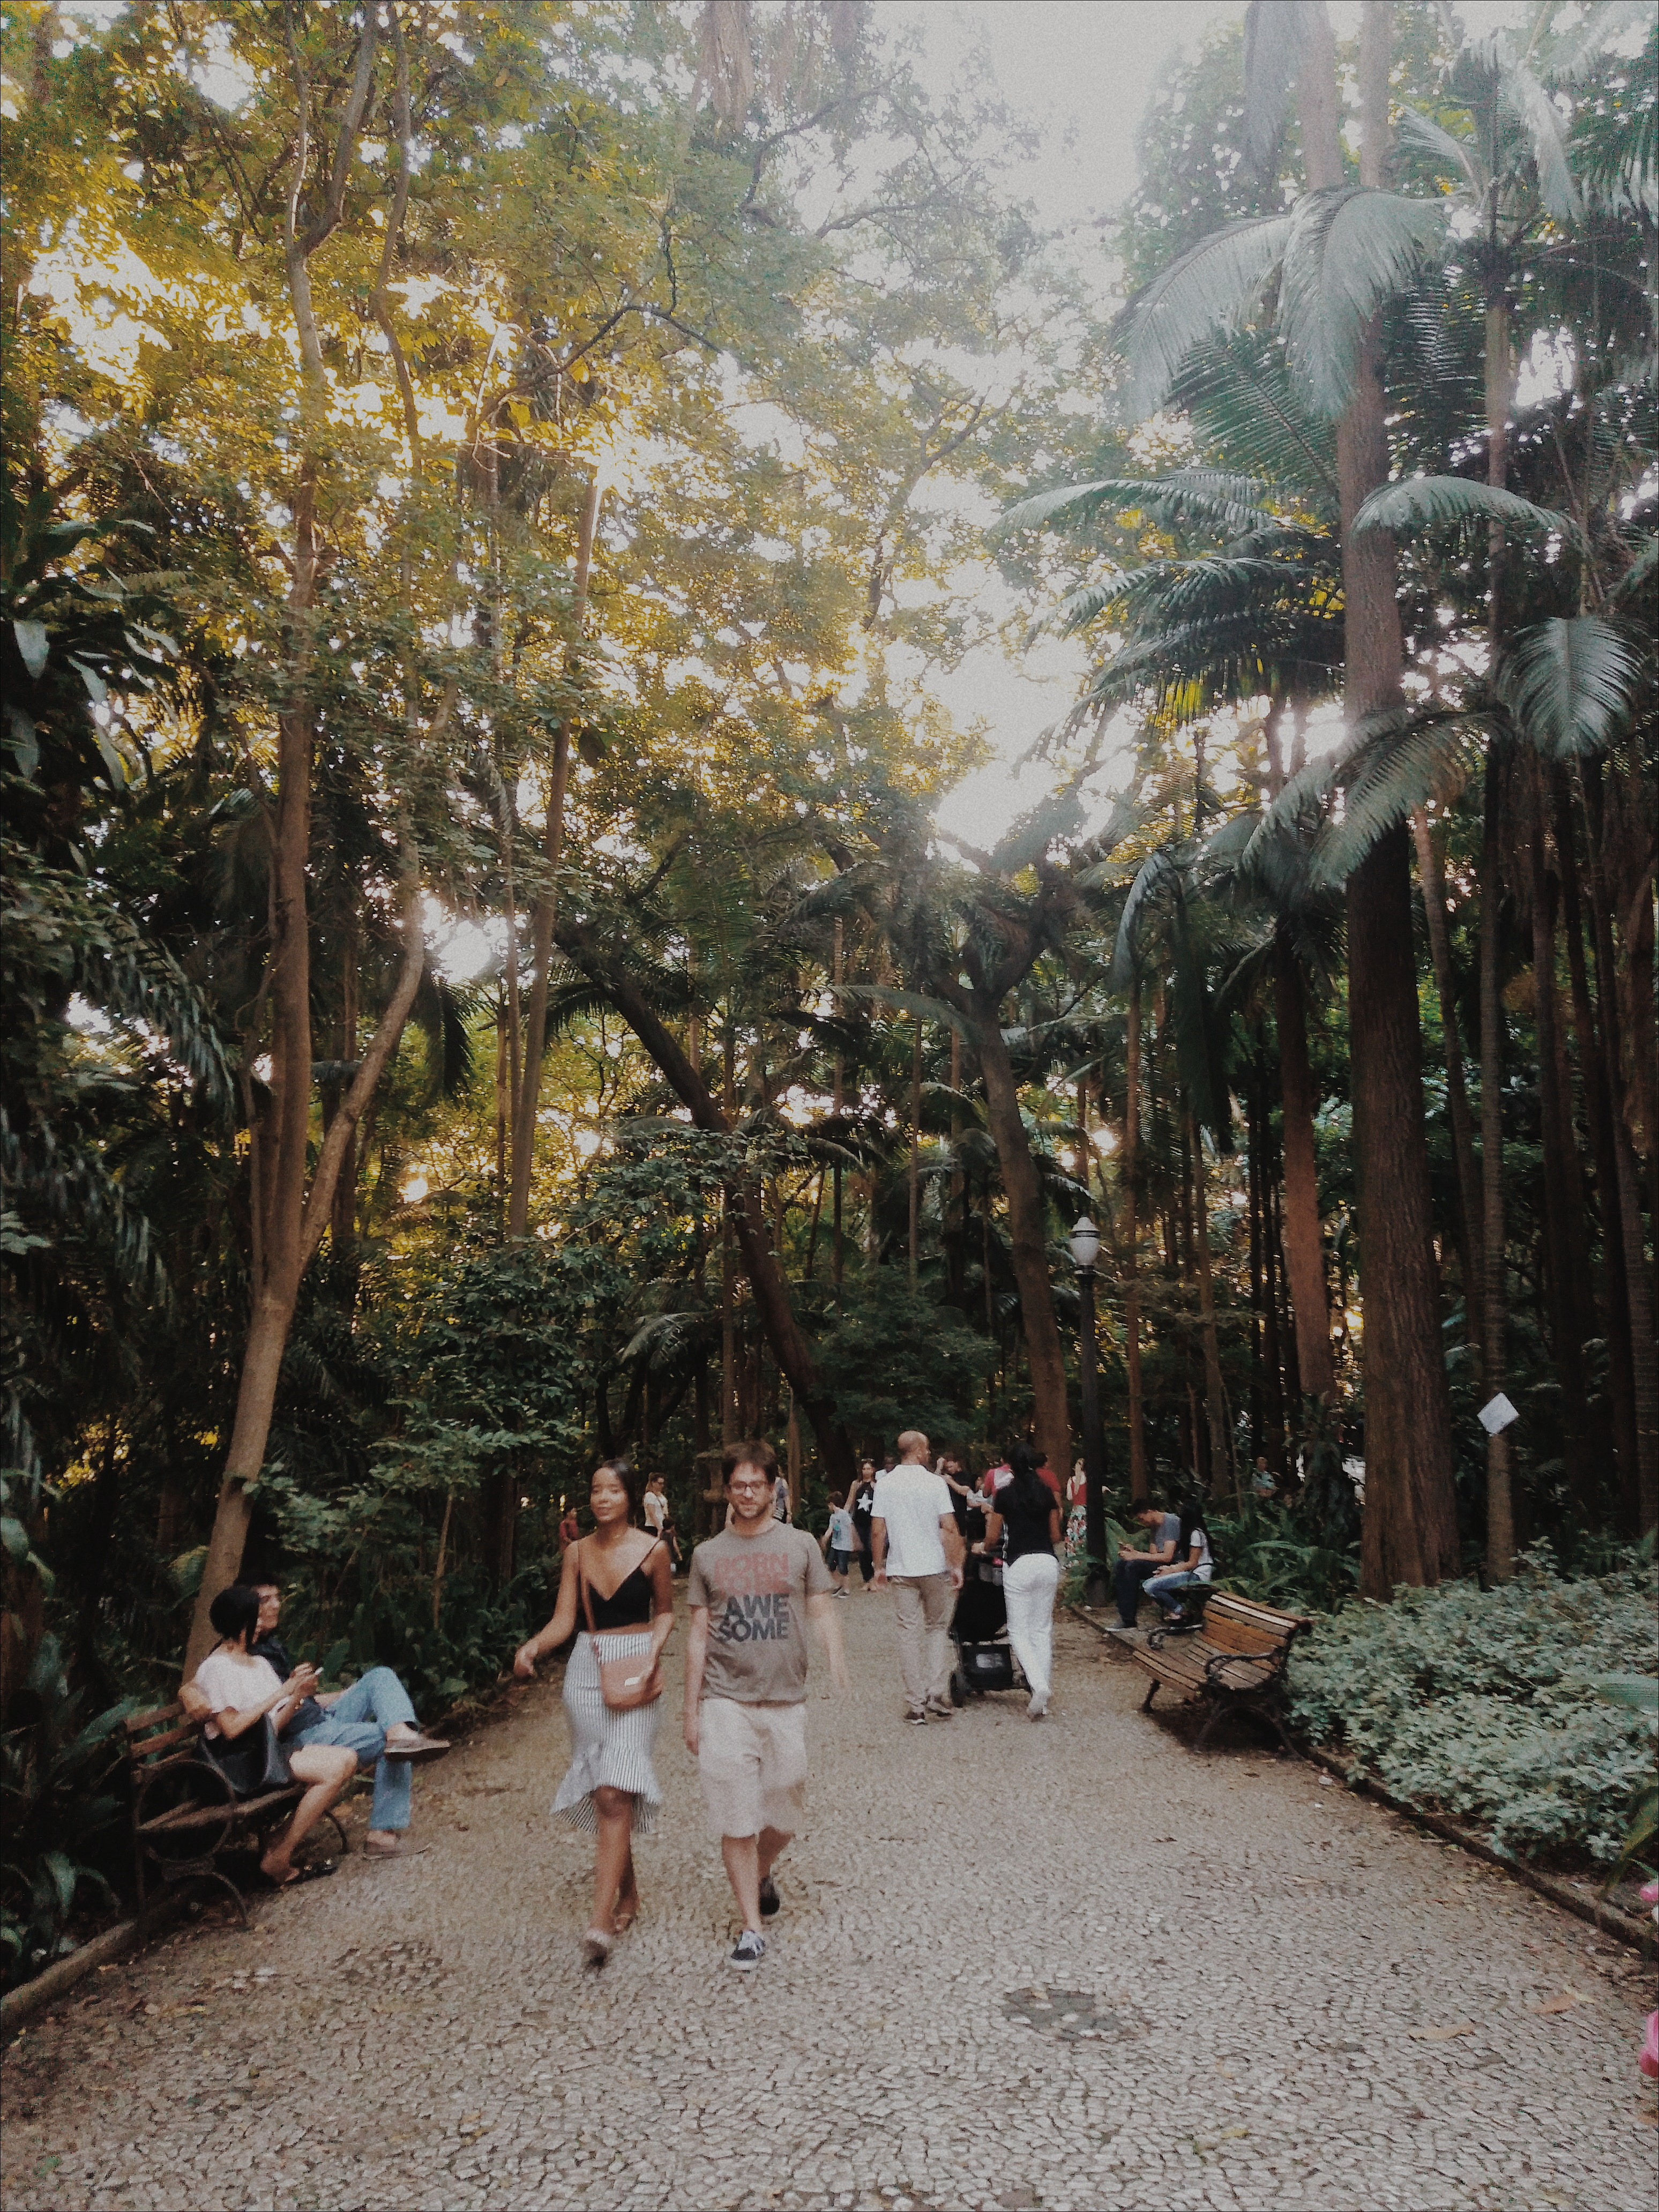 People Walking in a Park With Large Trees, Adult, Pathway, Walking, Vacation, HQ Photo